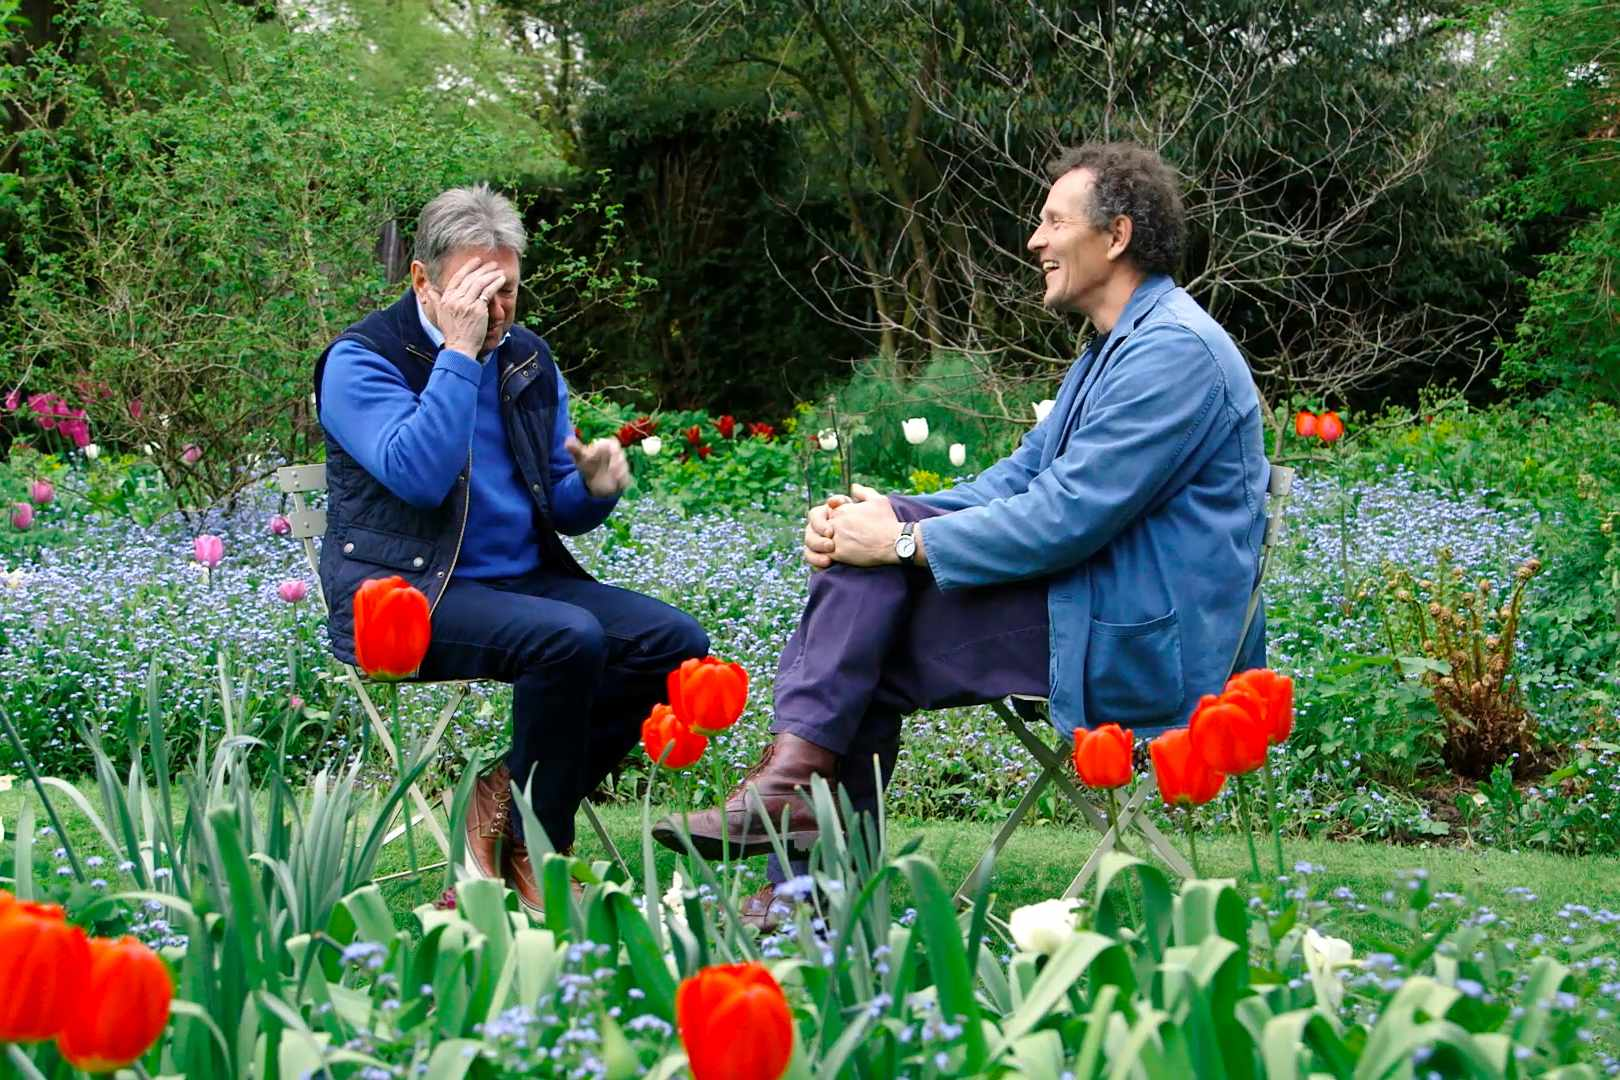 Alan Titchmarsh and Monty Don video Subsriber Club exclusive part one